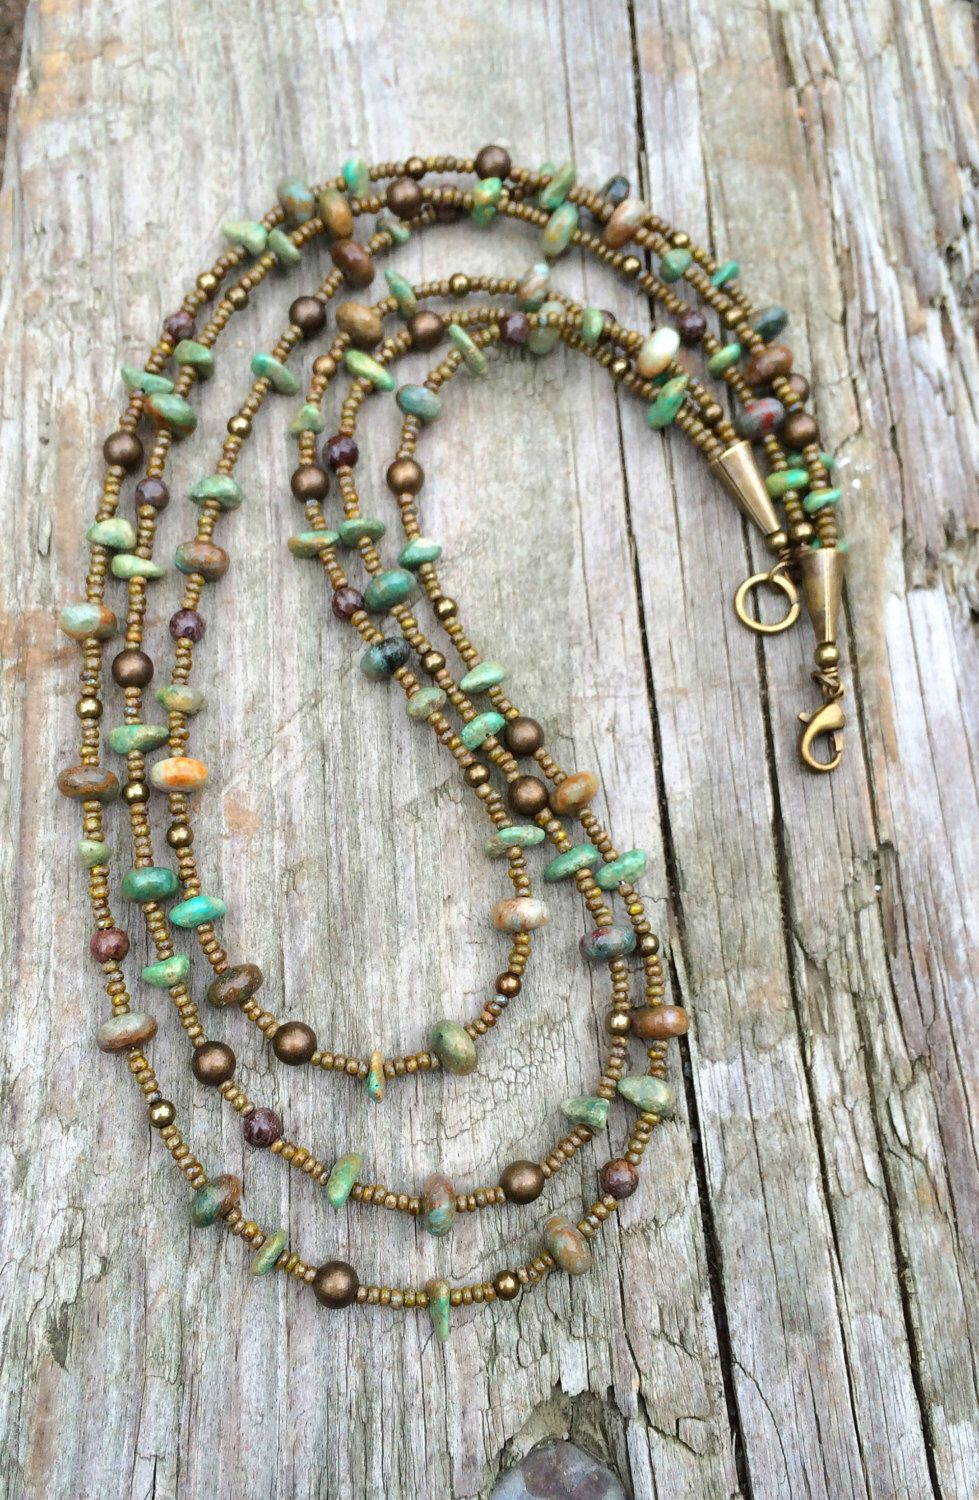 Turquoise Necklace, Brass Turquoise Boho Multi Strand Necklace by RusticaJewelry on Etsy https://www.etsy.com/listing/256832379/turquoise-necklace-brass-turquoise-boho